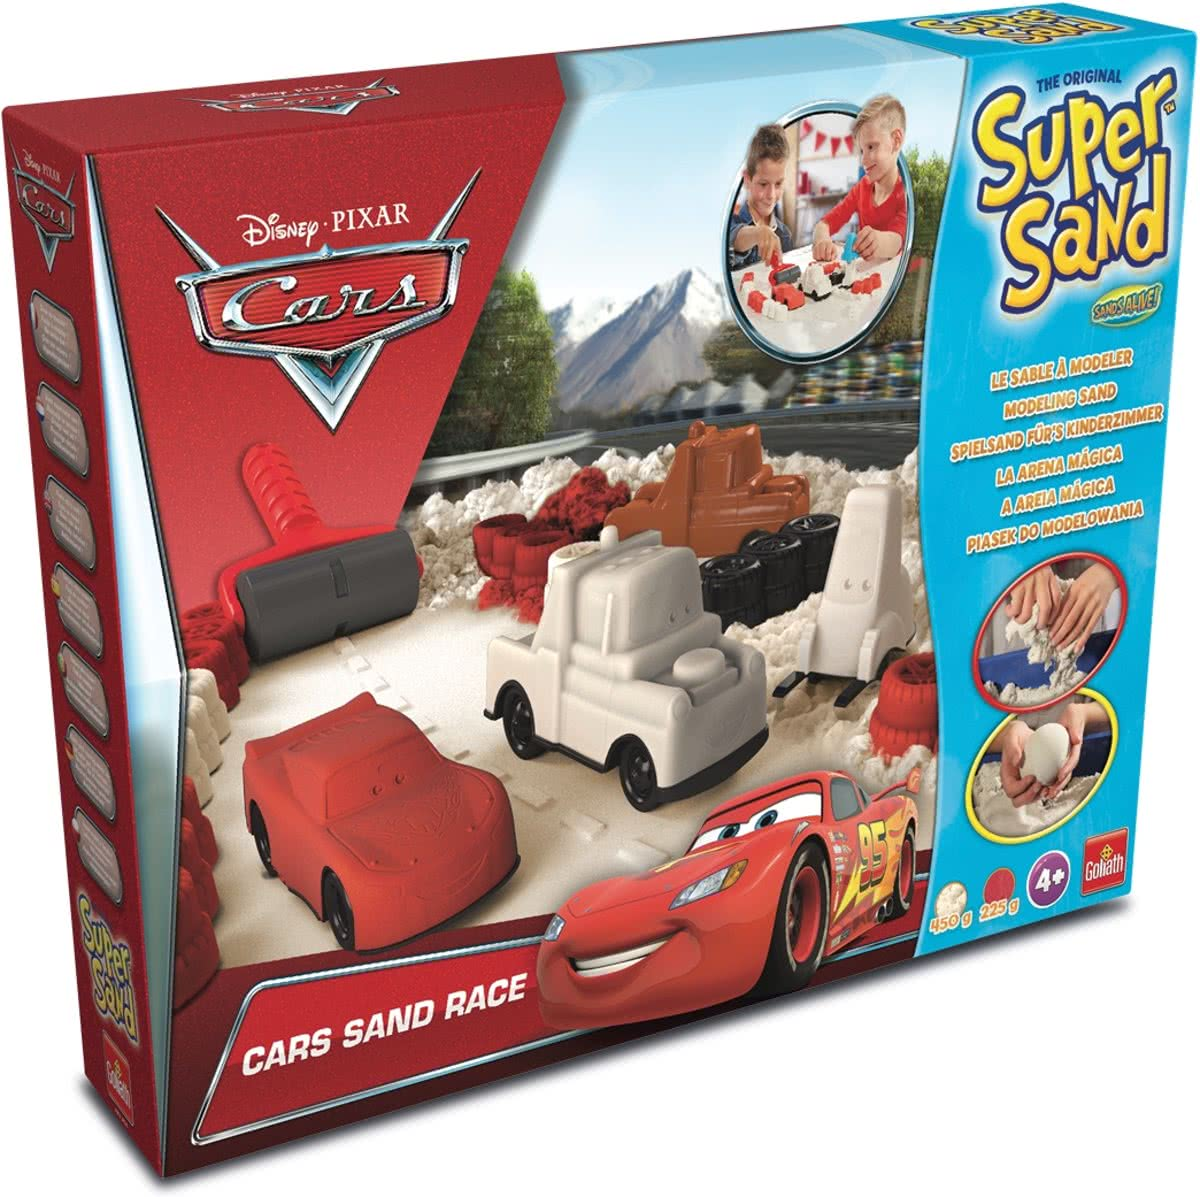 Goliath Super Sand Disney Cars